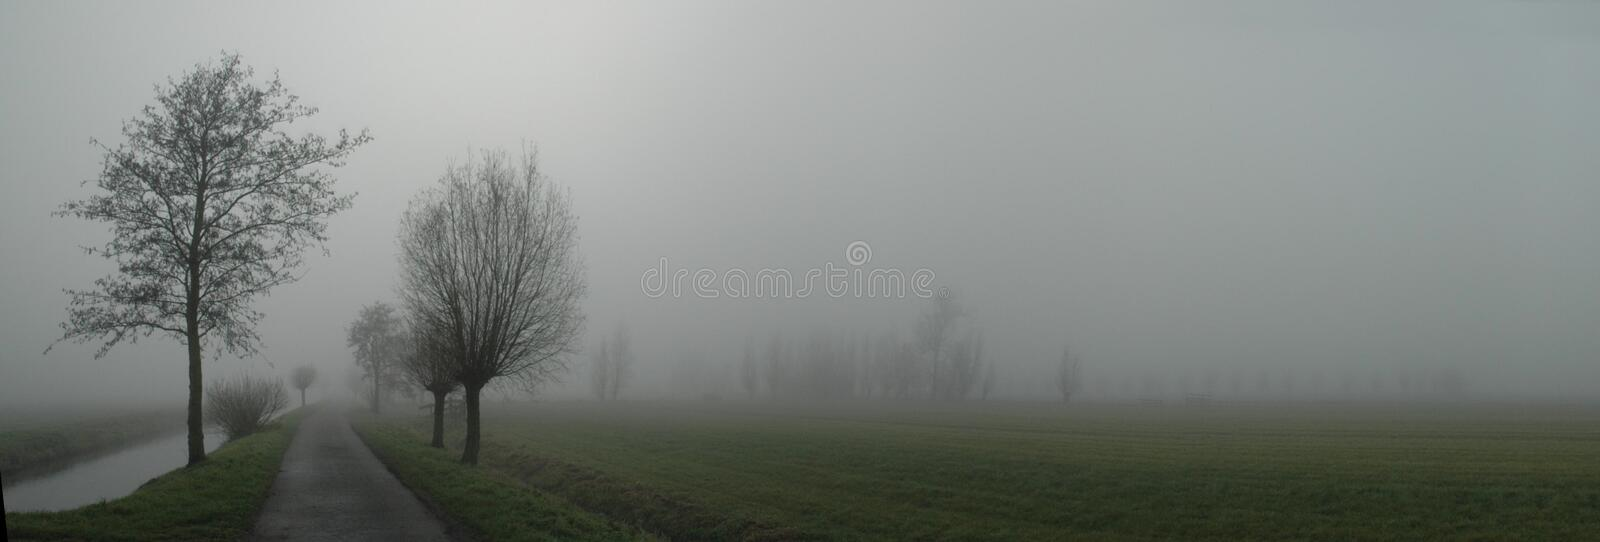 Misty Road Royalty Free Stock Image